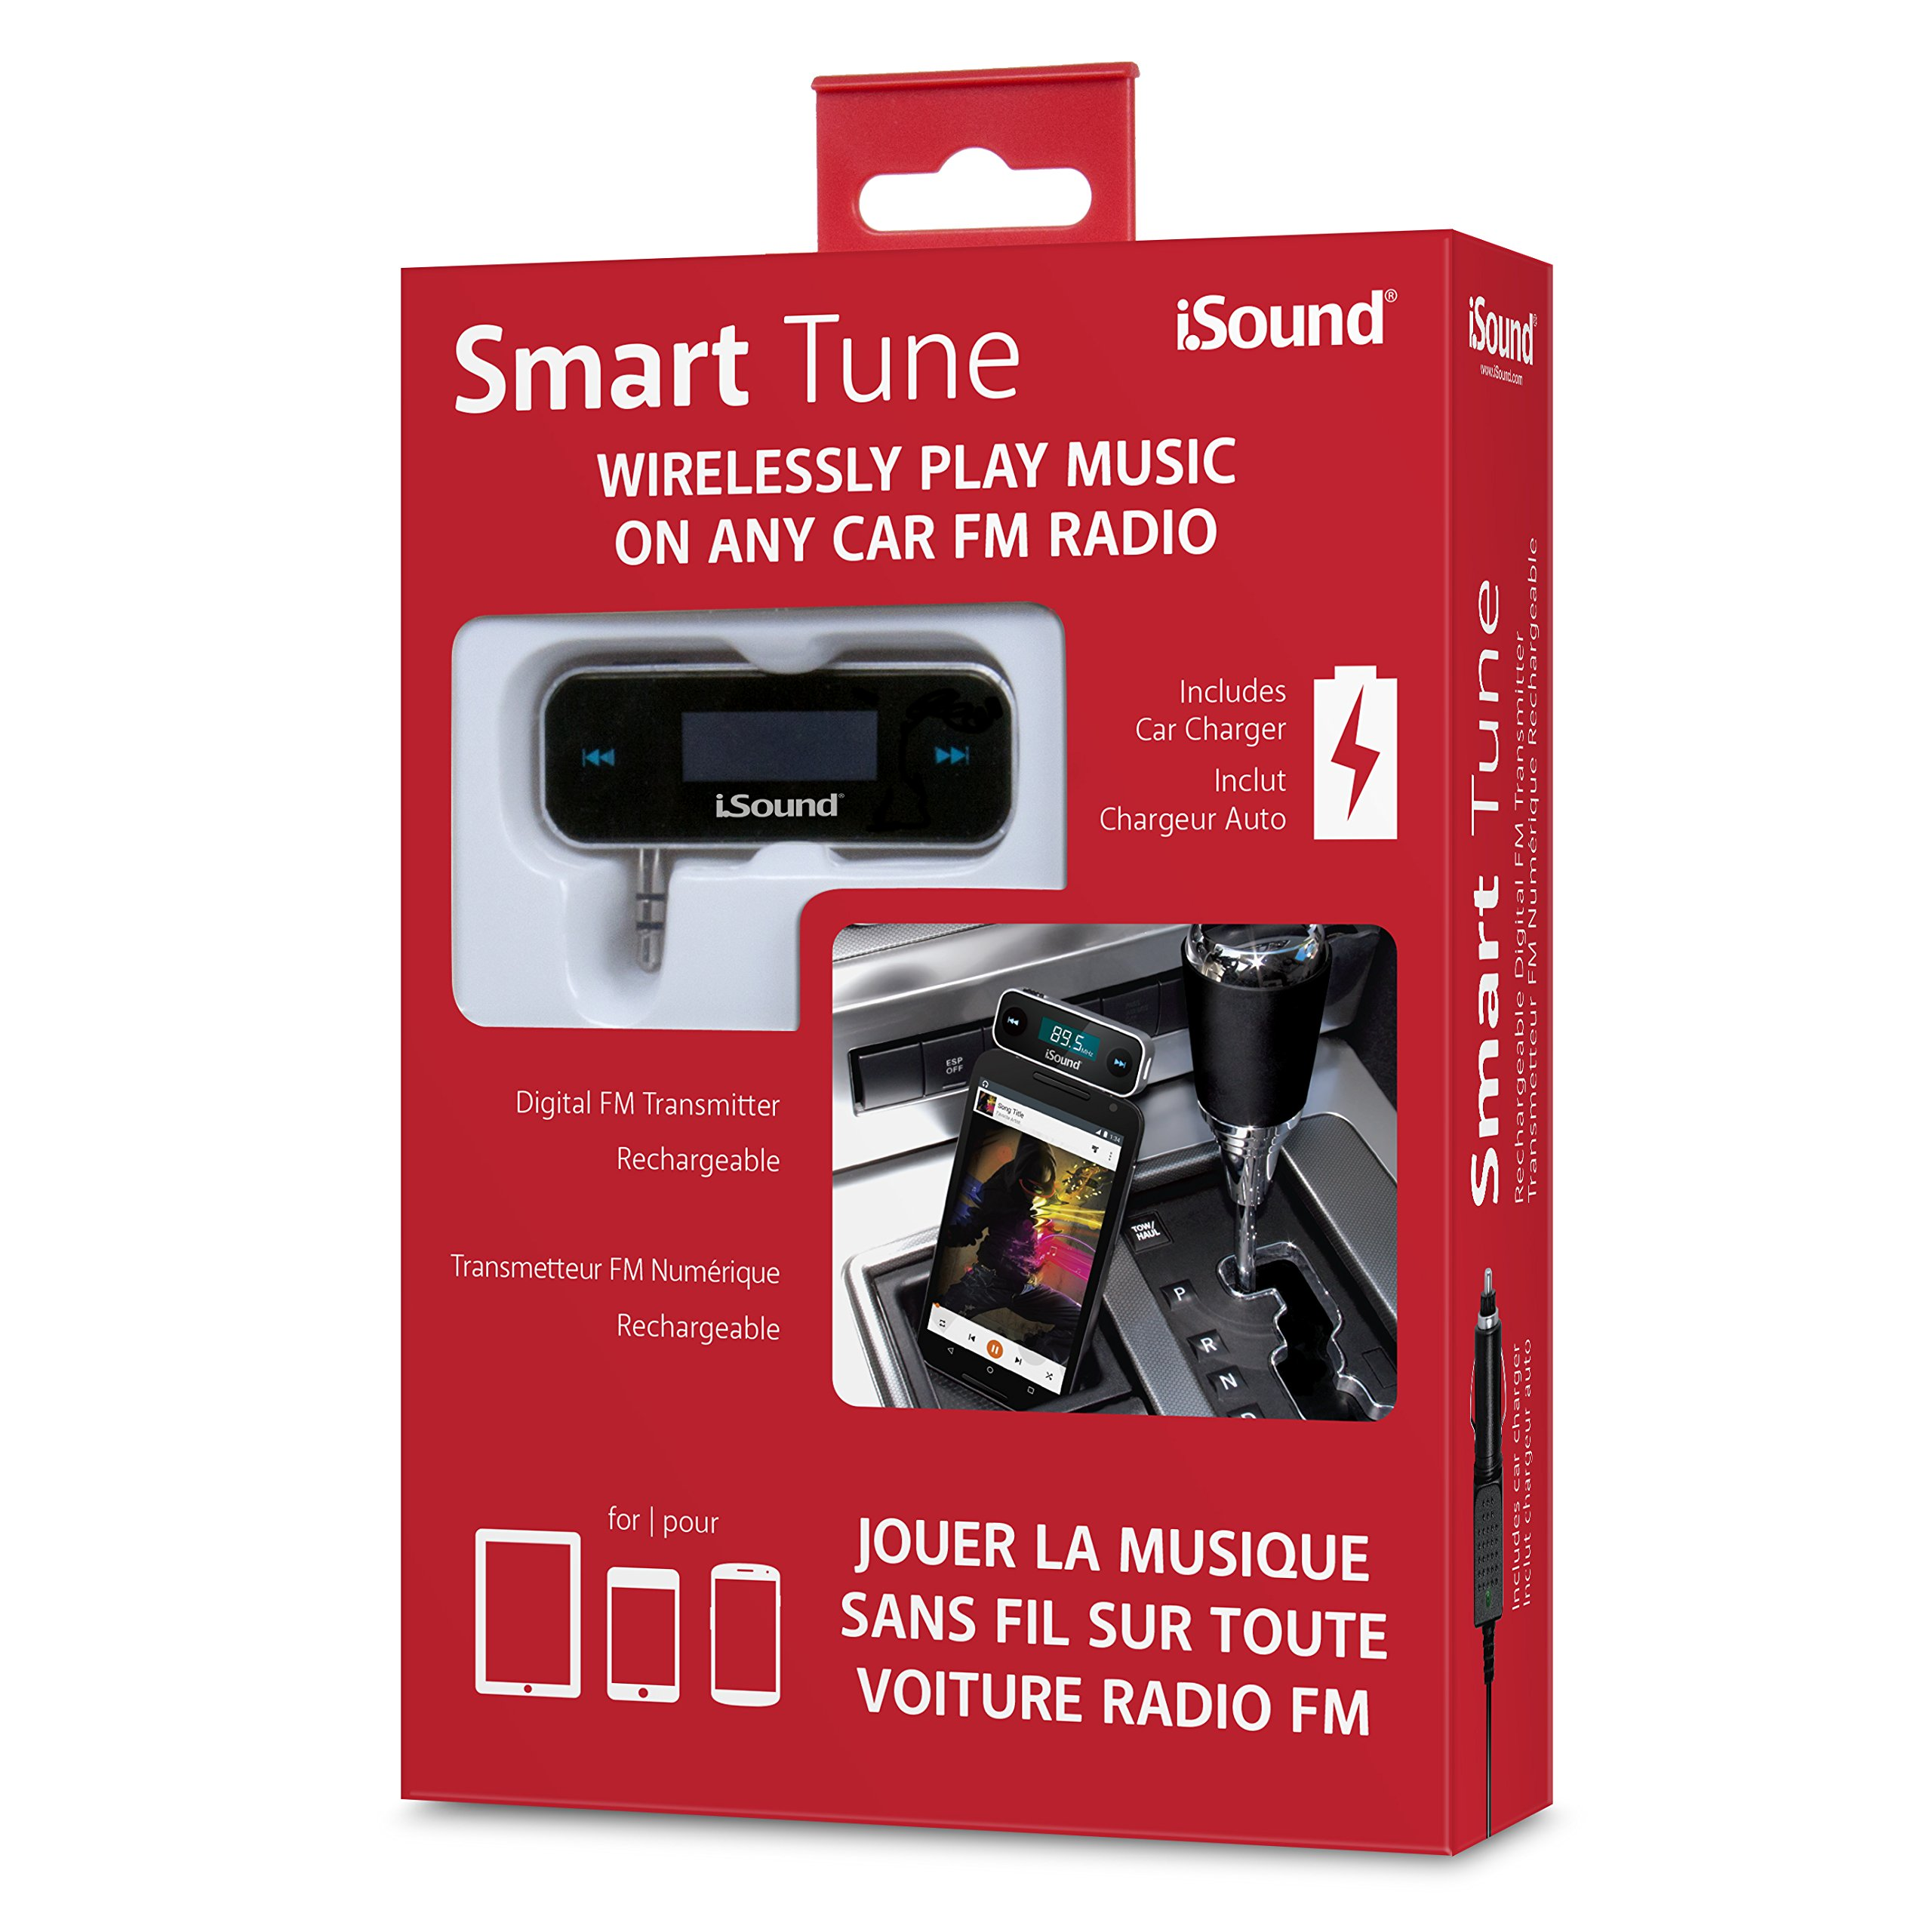 iSound Smart Tune 2 in 1 - Wireless FM Transmitter with Rechargeable Battery & included Car Charger by iSound (Image #5)